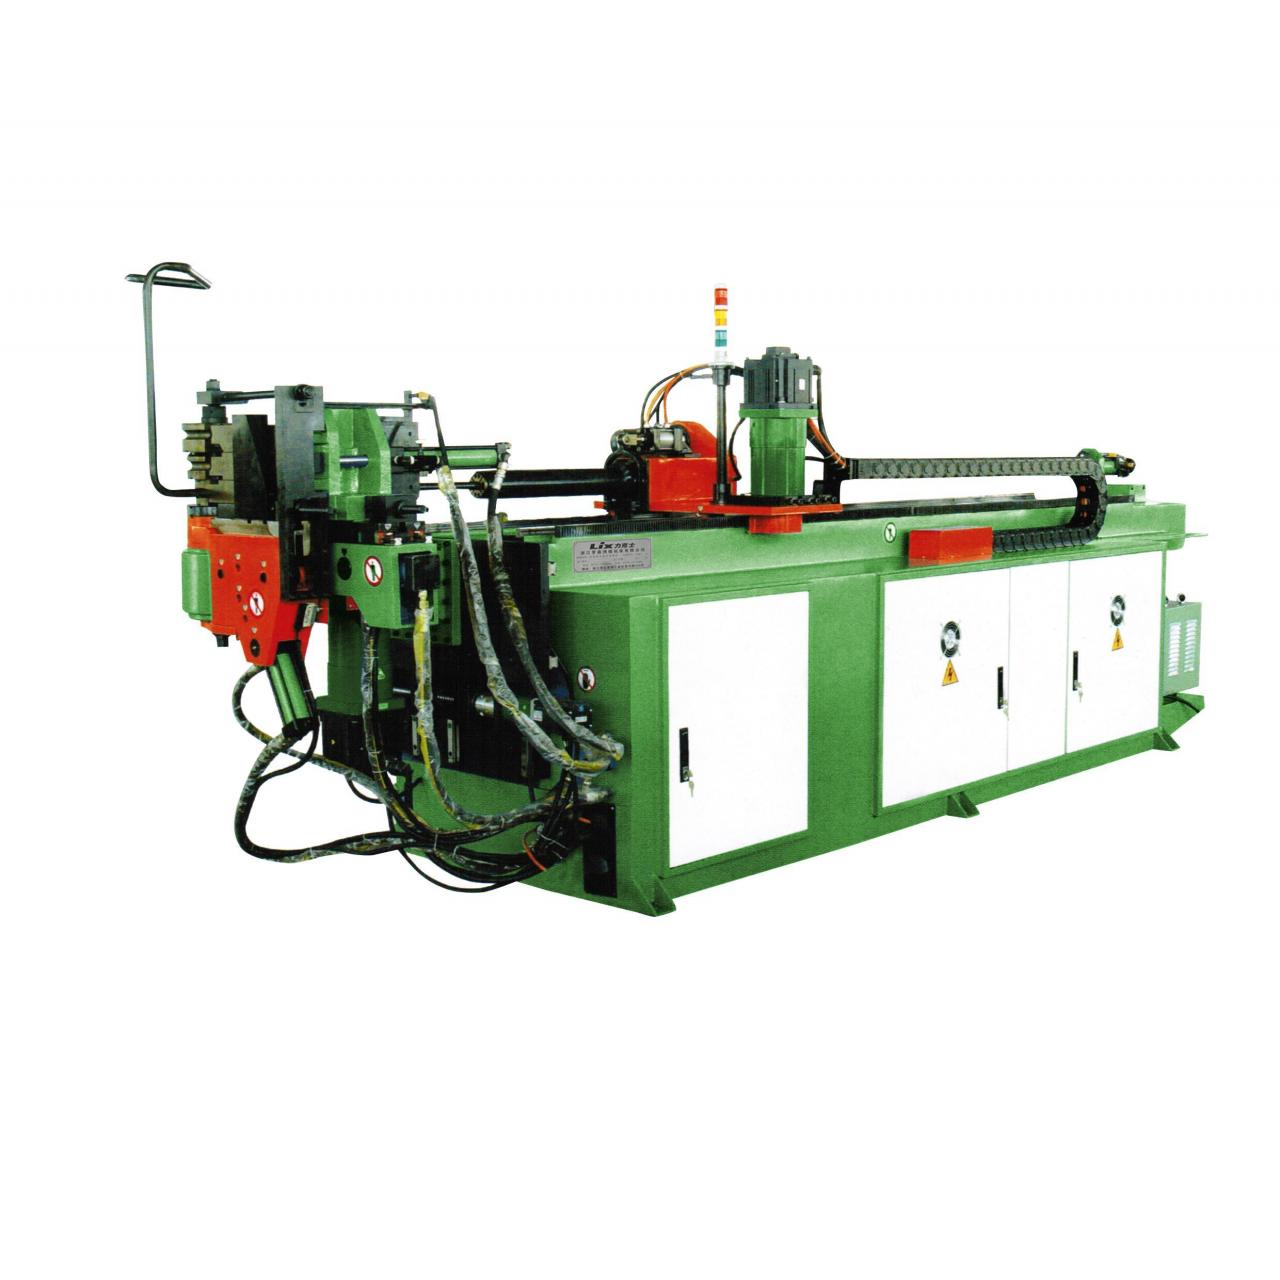 CNC pipe bending machine LDW-38CNC-5A-3S Manufactures